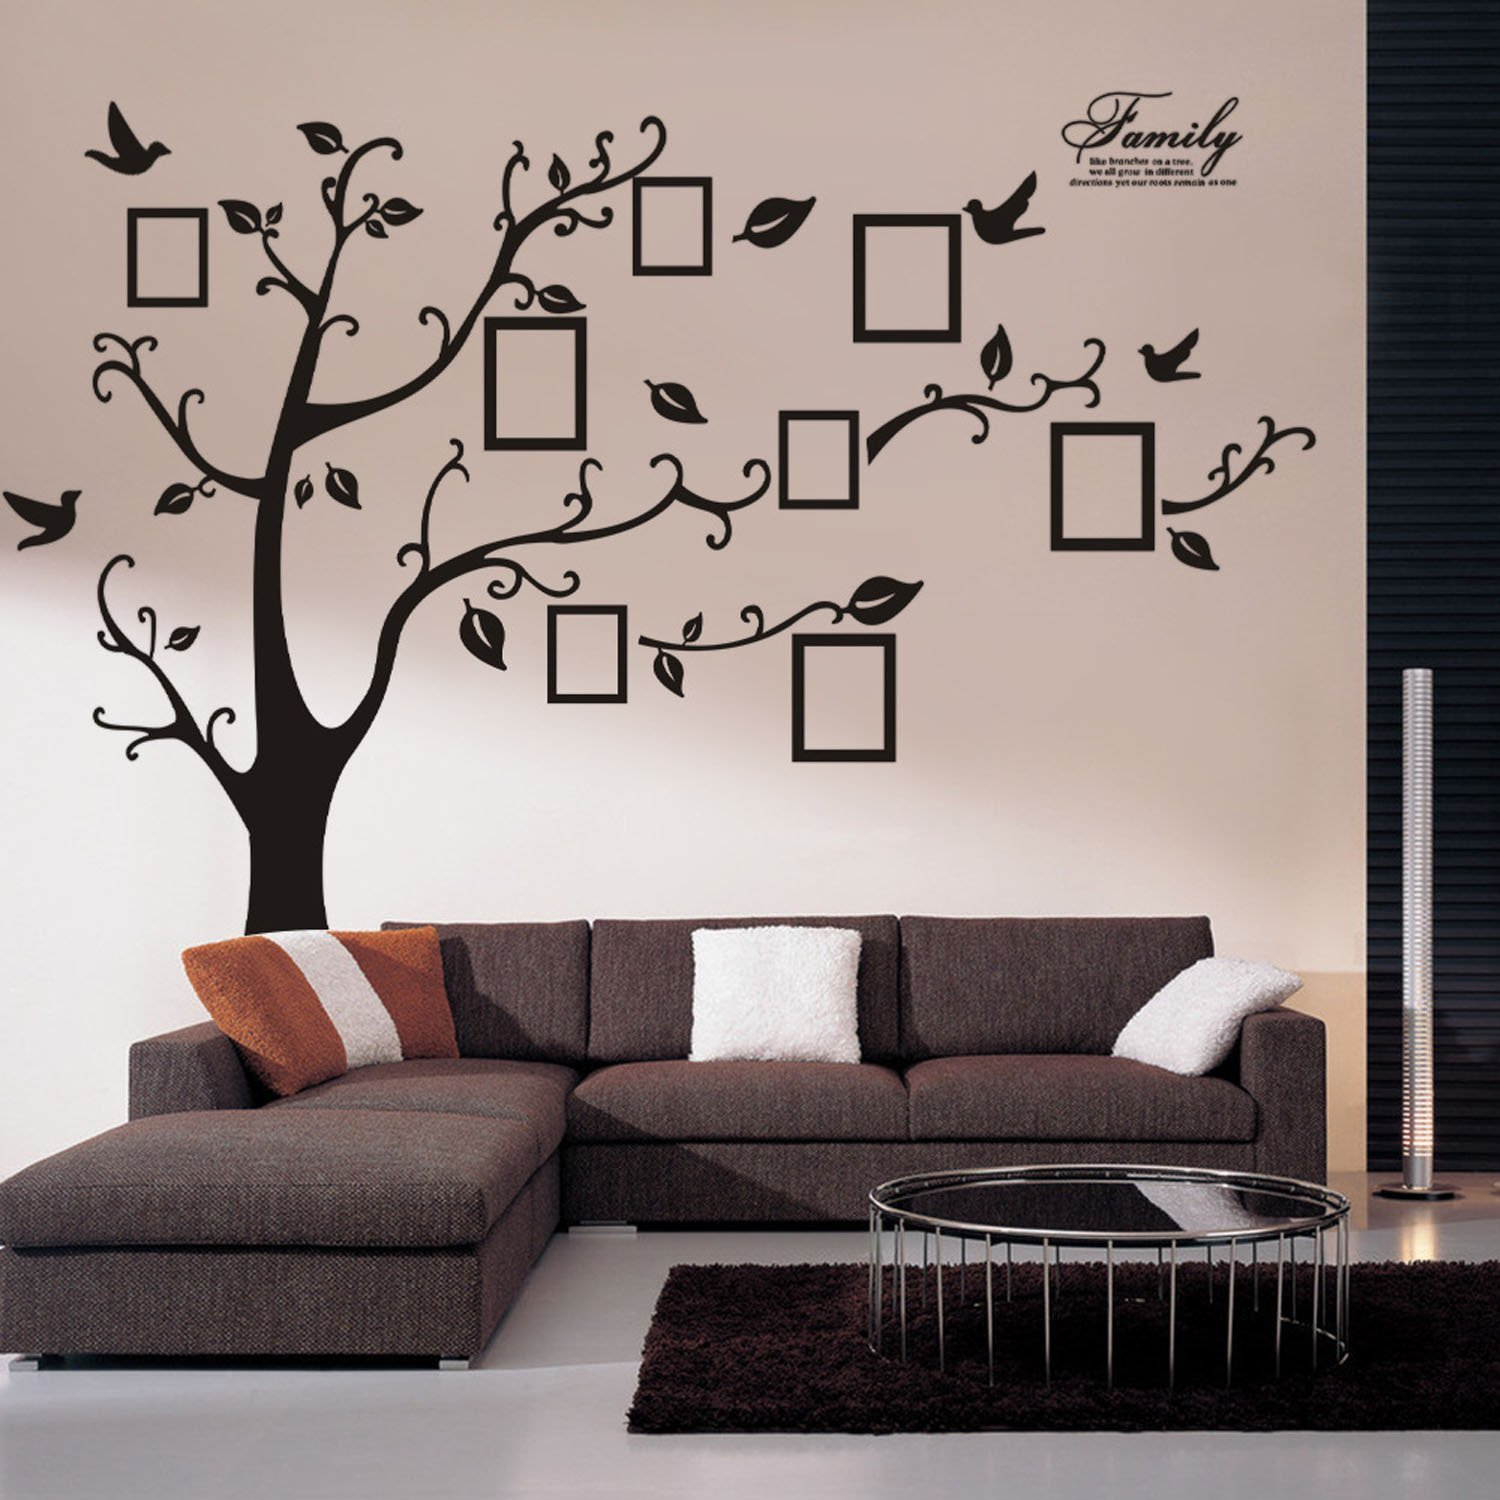 Pegatinas de pared Lisdripe, pvc, negro, Family Tree Photo Fames: Amazon.es: Hogar